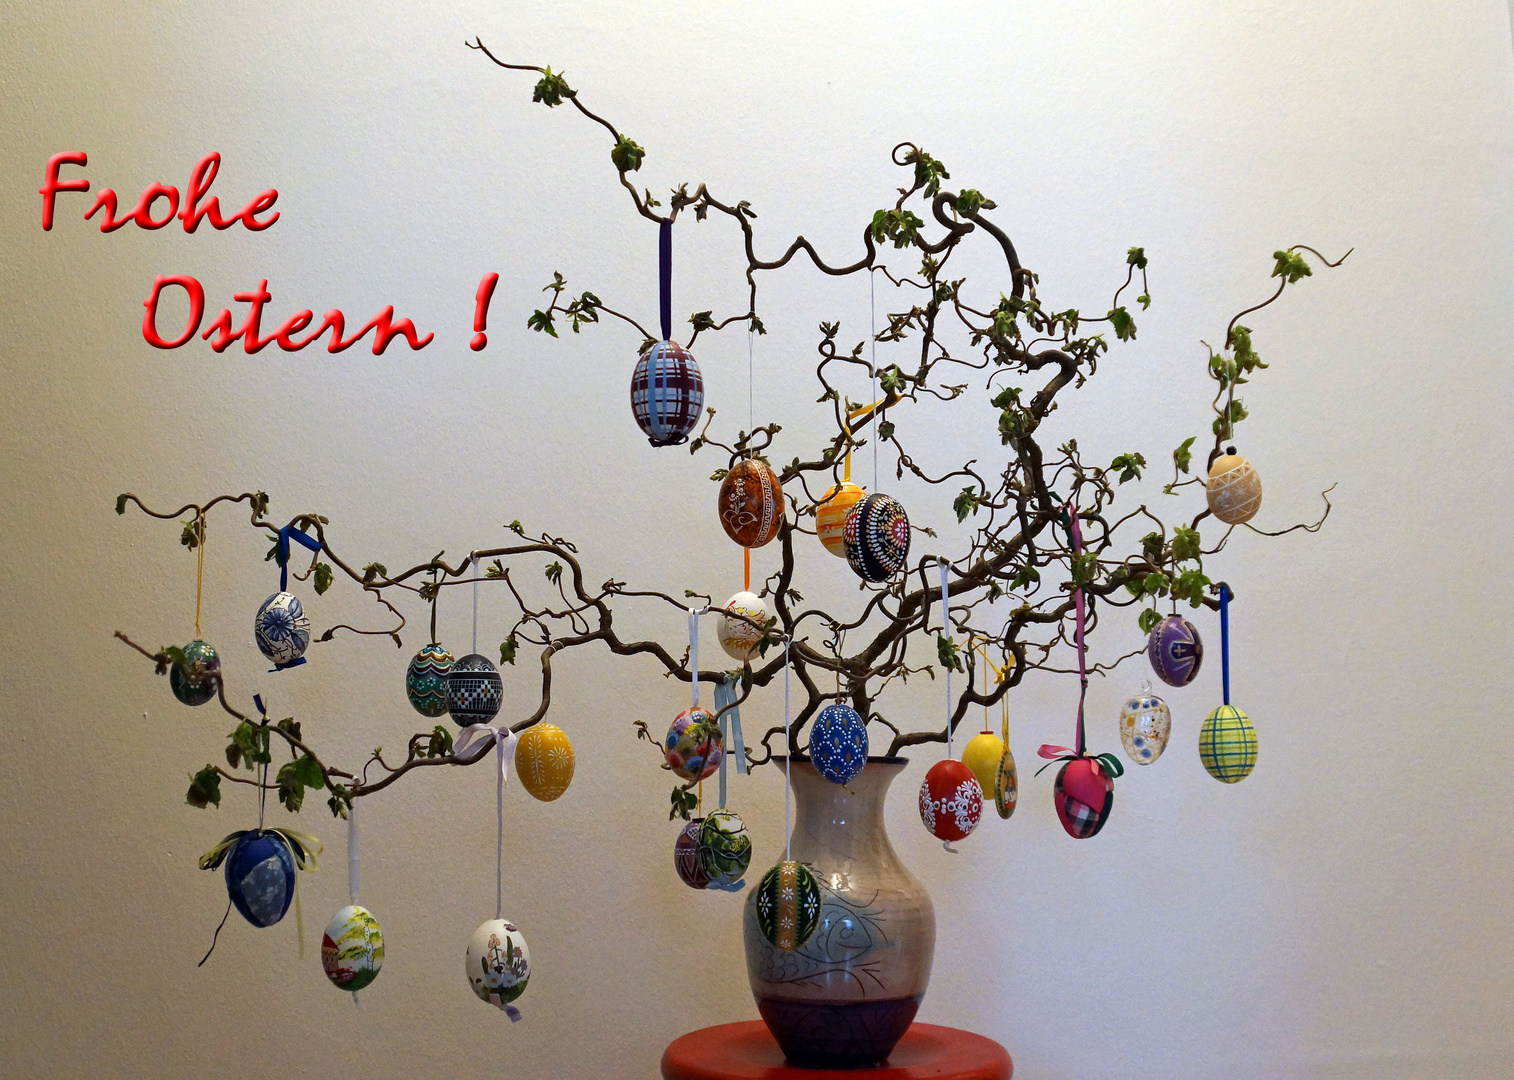 FROHE OSTERN ....